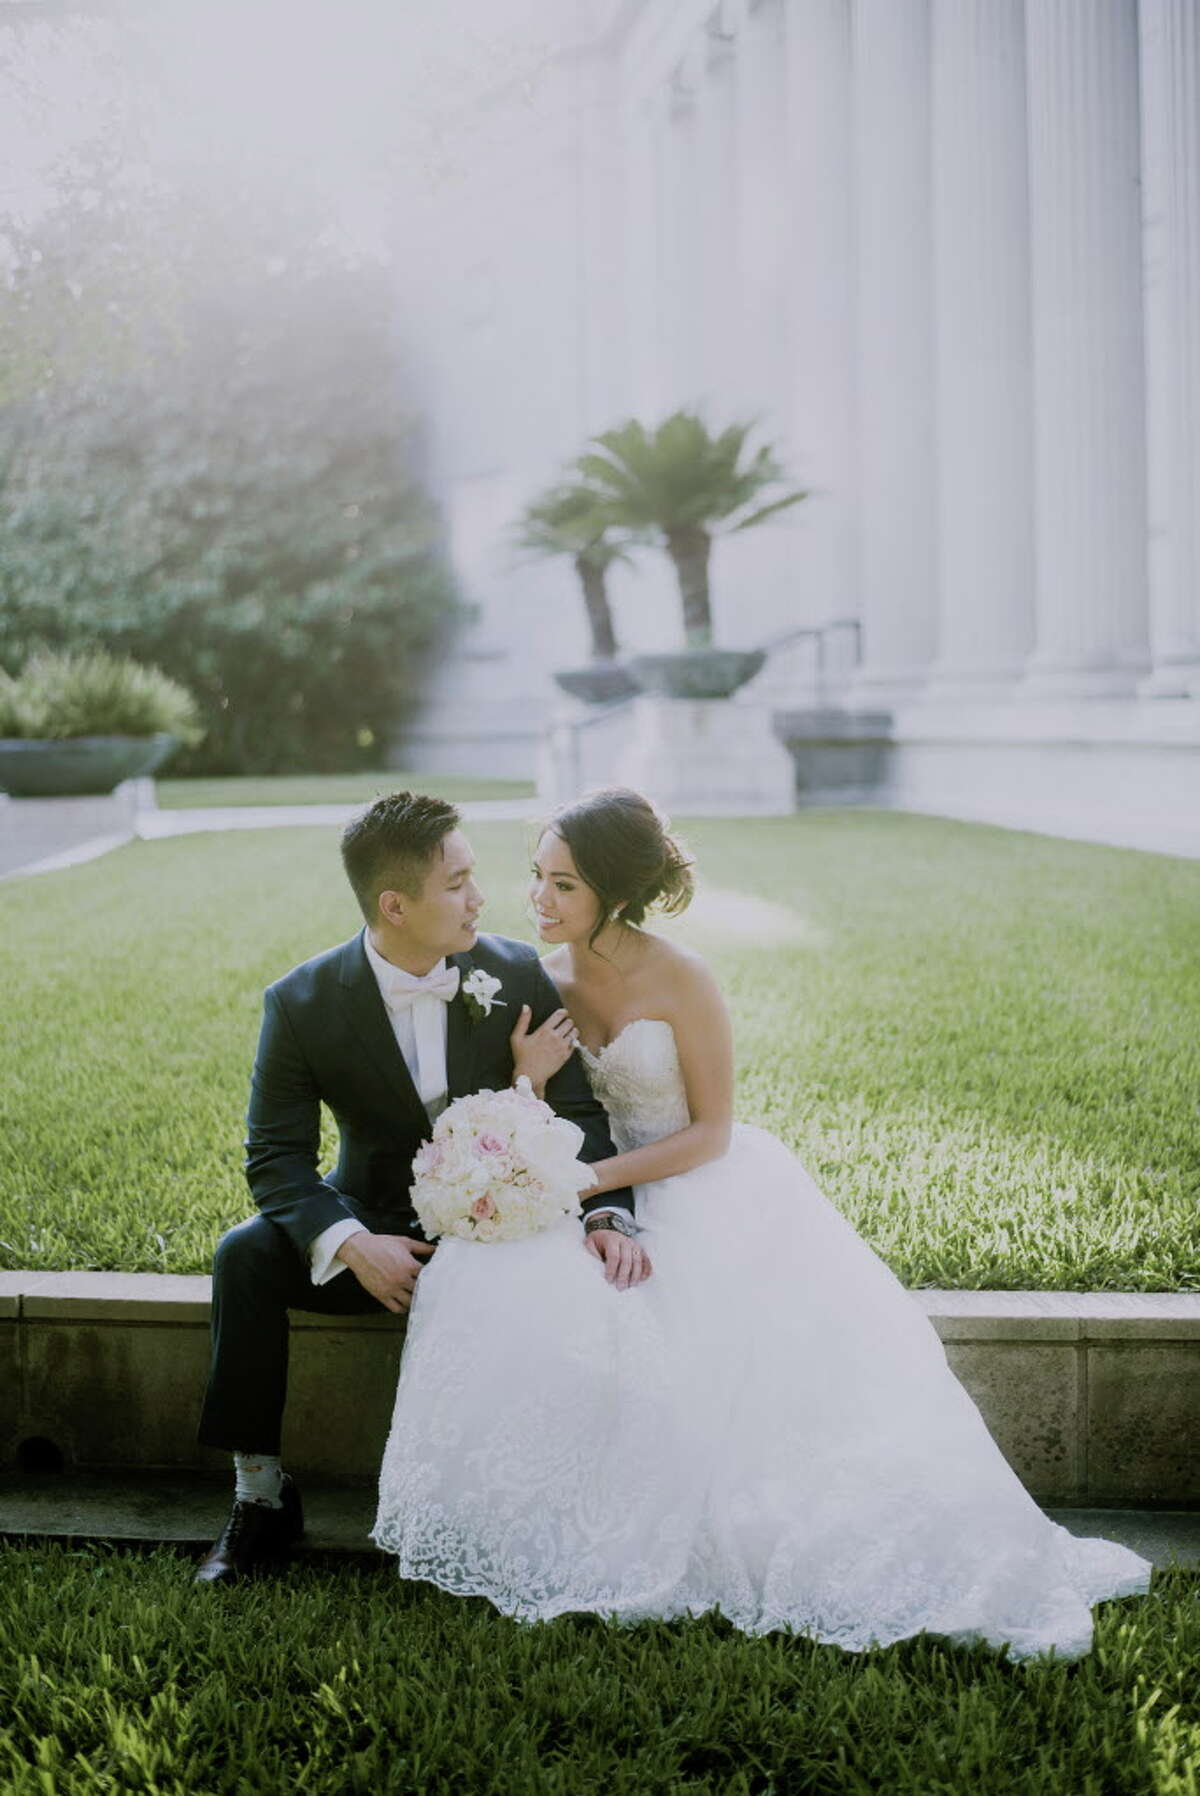 Jessica Pham and Brian Lai tie the knot at Hotel ZaZa, after 12 years of dating.